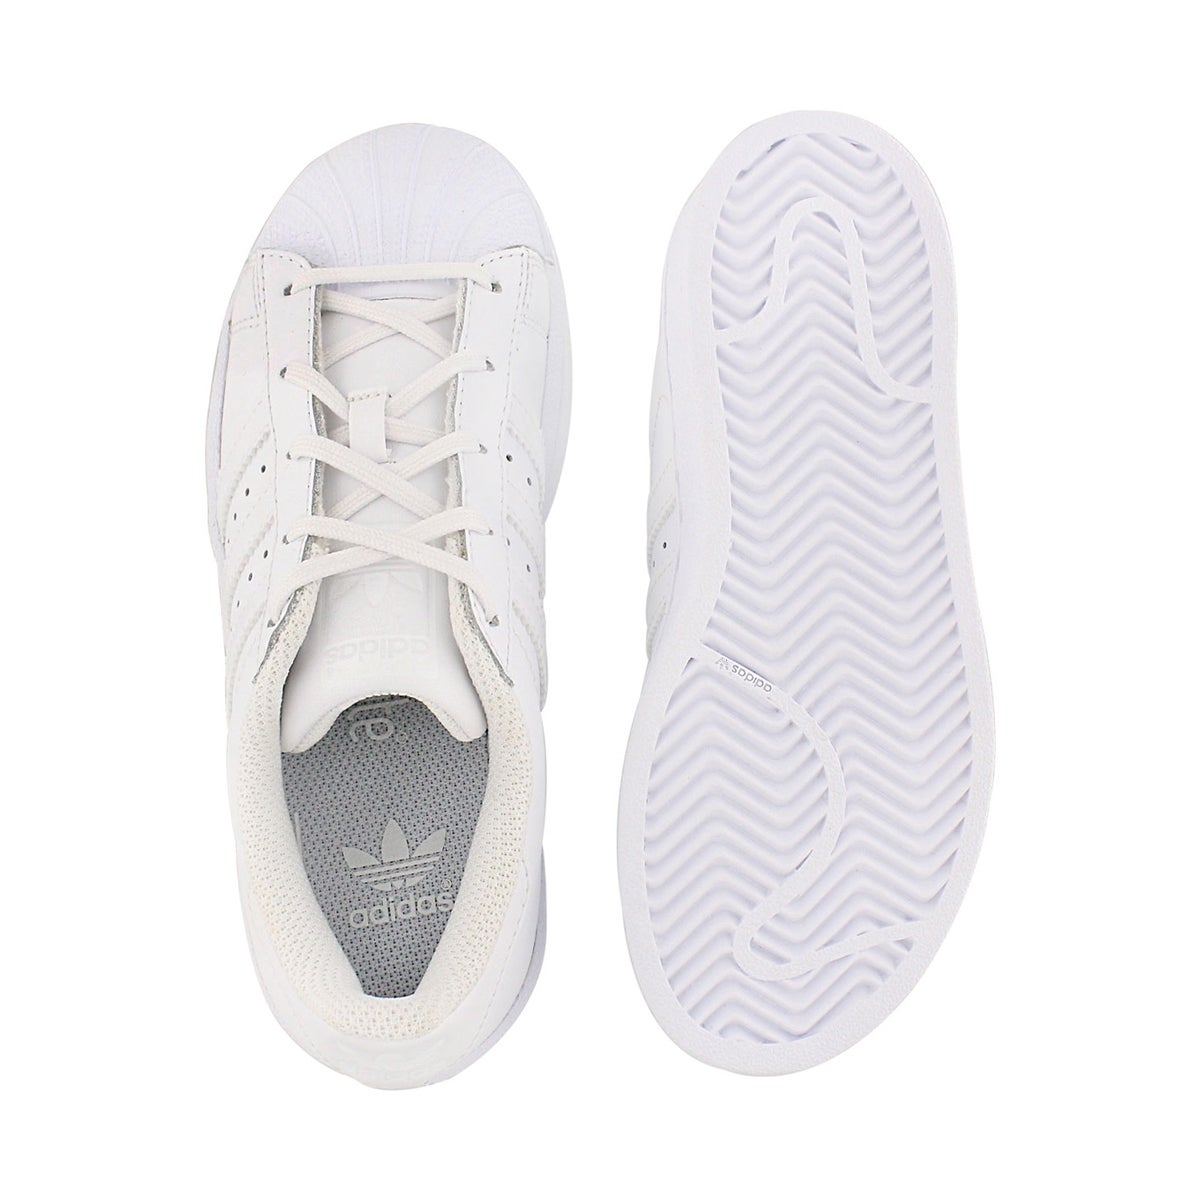 Chlds Superstar white lace up